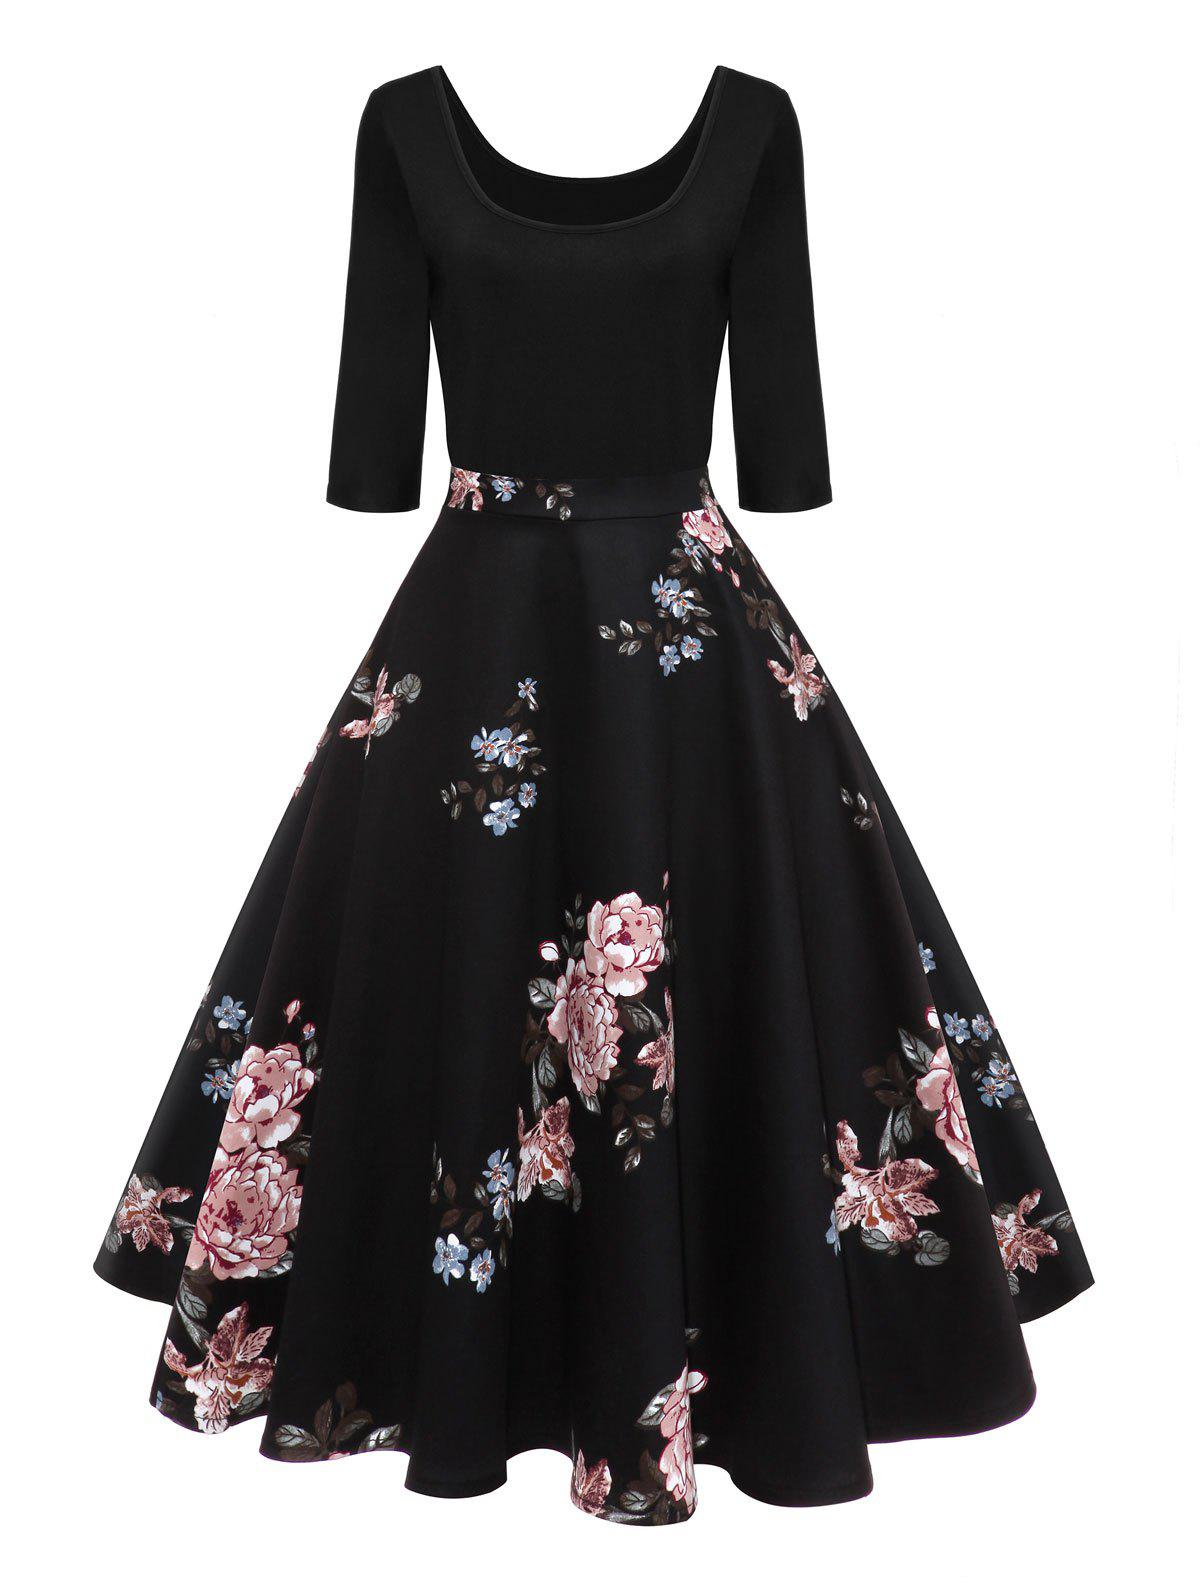 Retro U Neck Floral Pin Up DressWOMEN<br><br>Size: S; Color: BLACK; Style: Vintage; Material: Cotton,Polyester; Silhouette: A-Line; Dresses Length: Knee-Length; Neckline: U Neck; Sleeve Length: 3/4 Length Sleeves; Pattern Type: Floral; With Belt: No; Season: Fall,Spring; Weight: 0.4000kg; Package Contents: 1 x Dress;